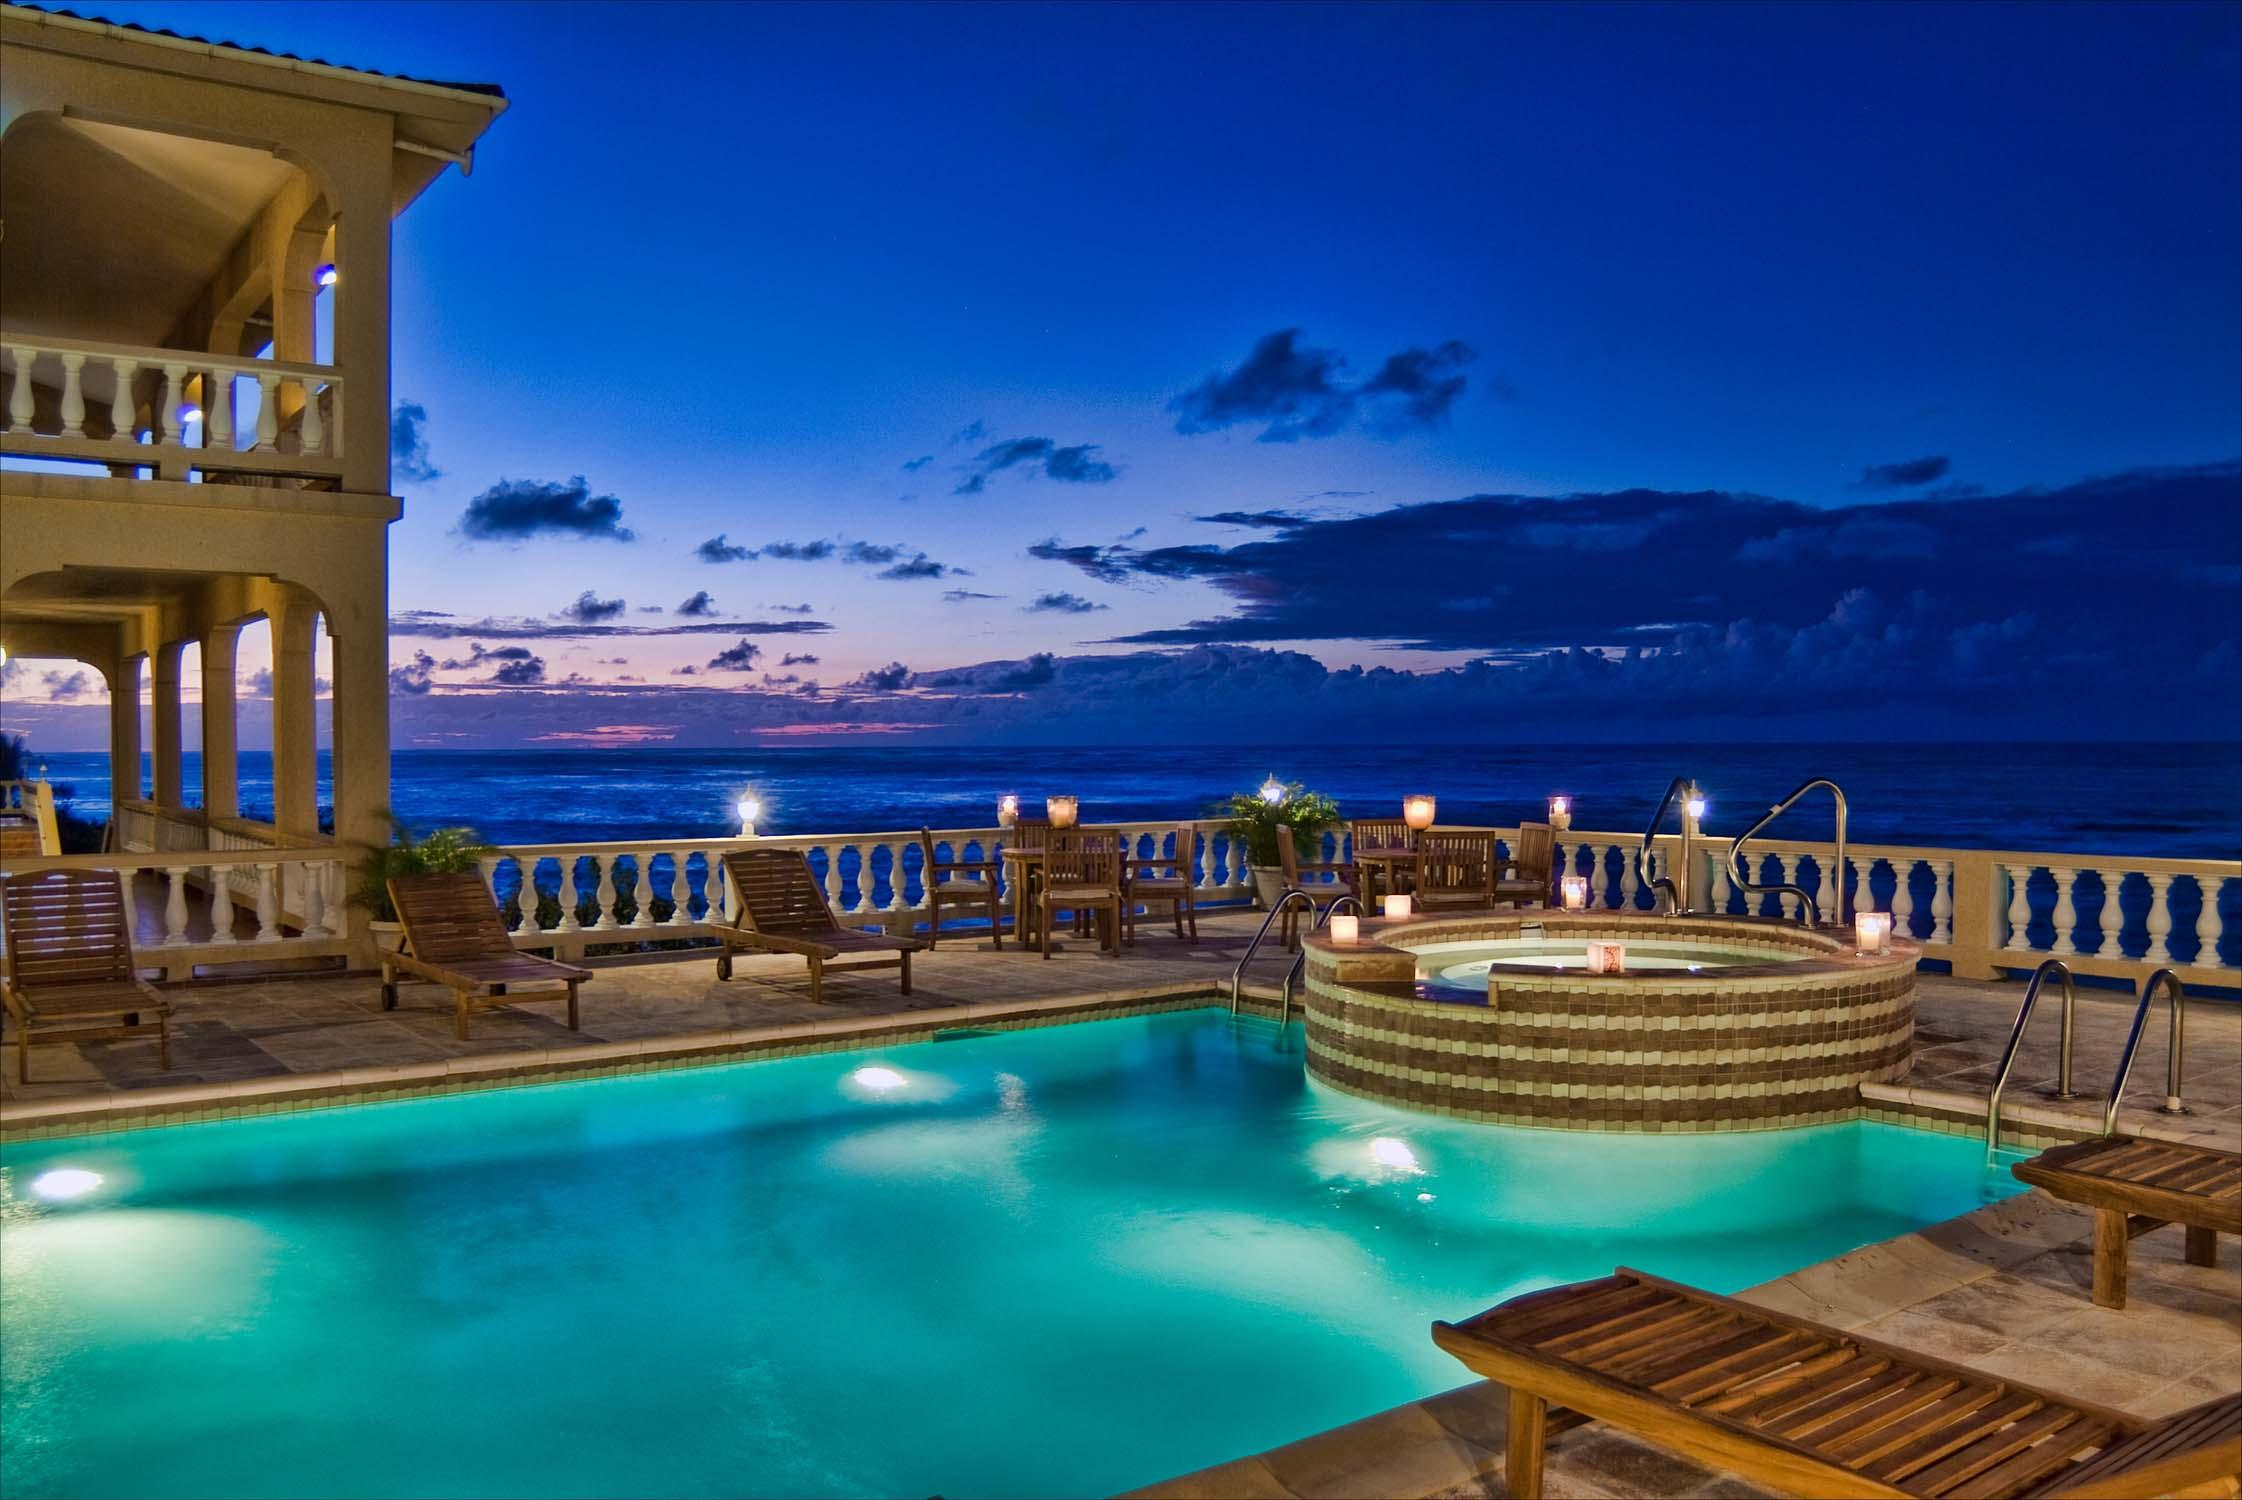 Villa ultimacy in anguilla brownell travel for Distinctive villas